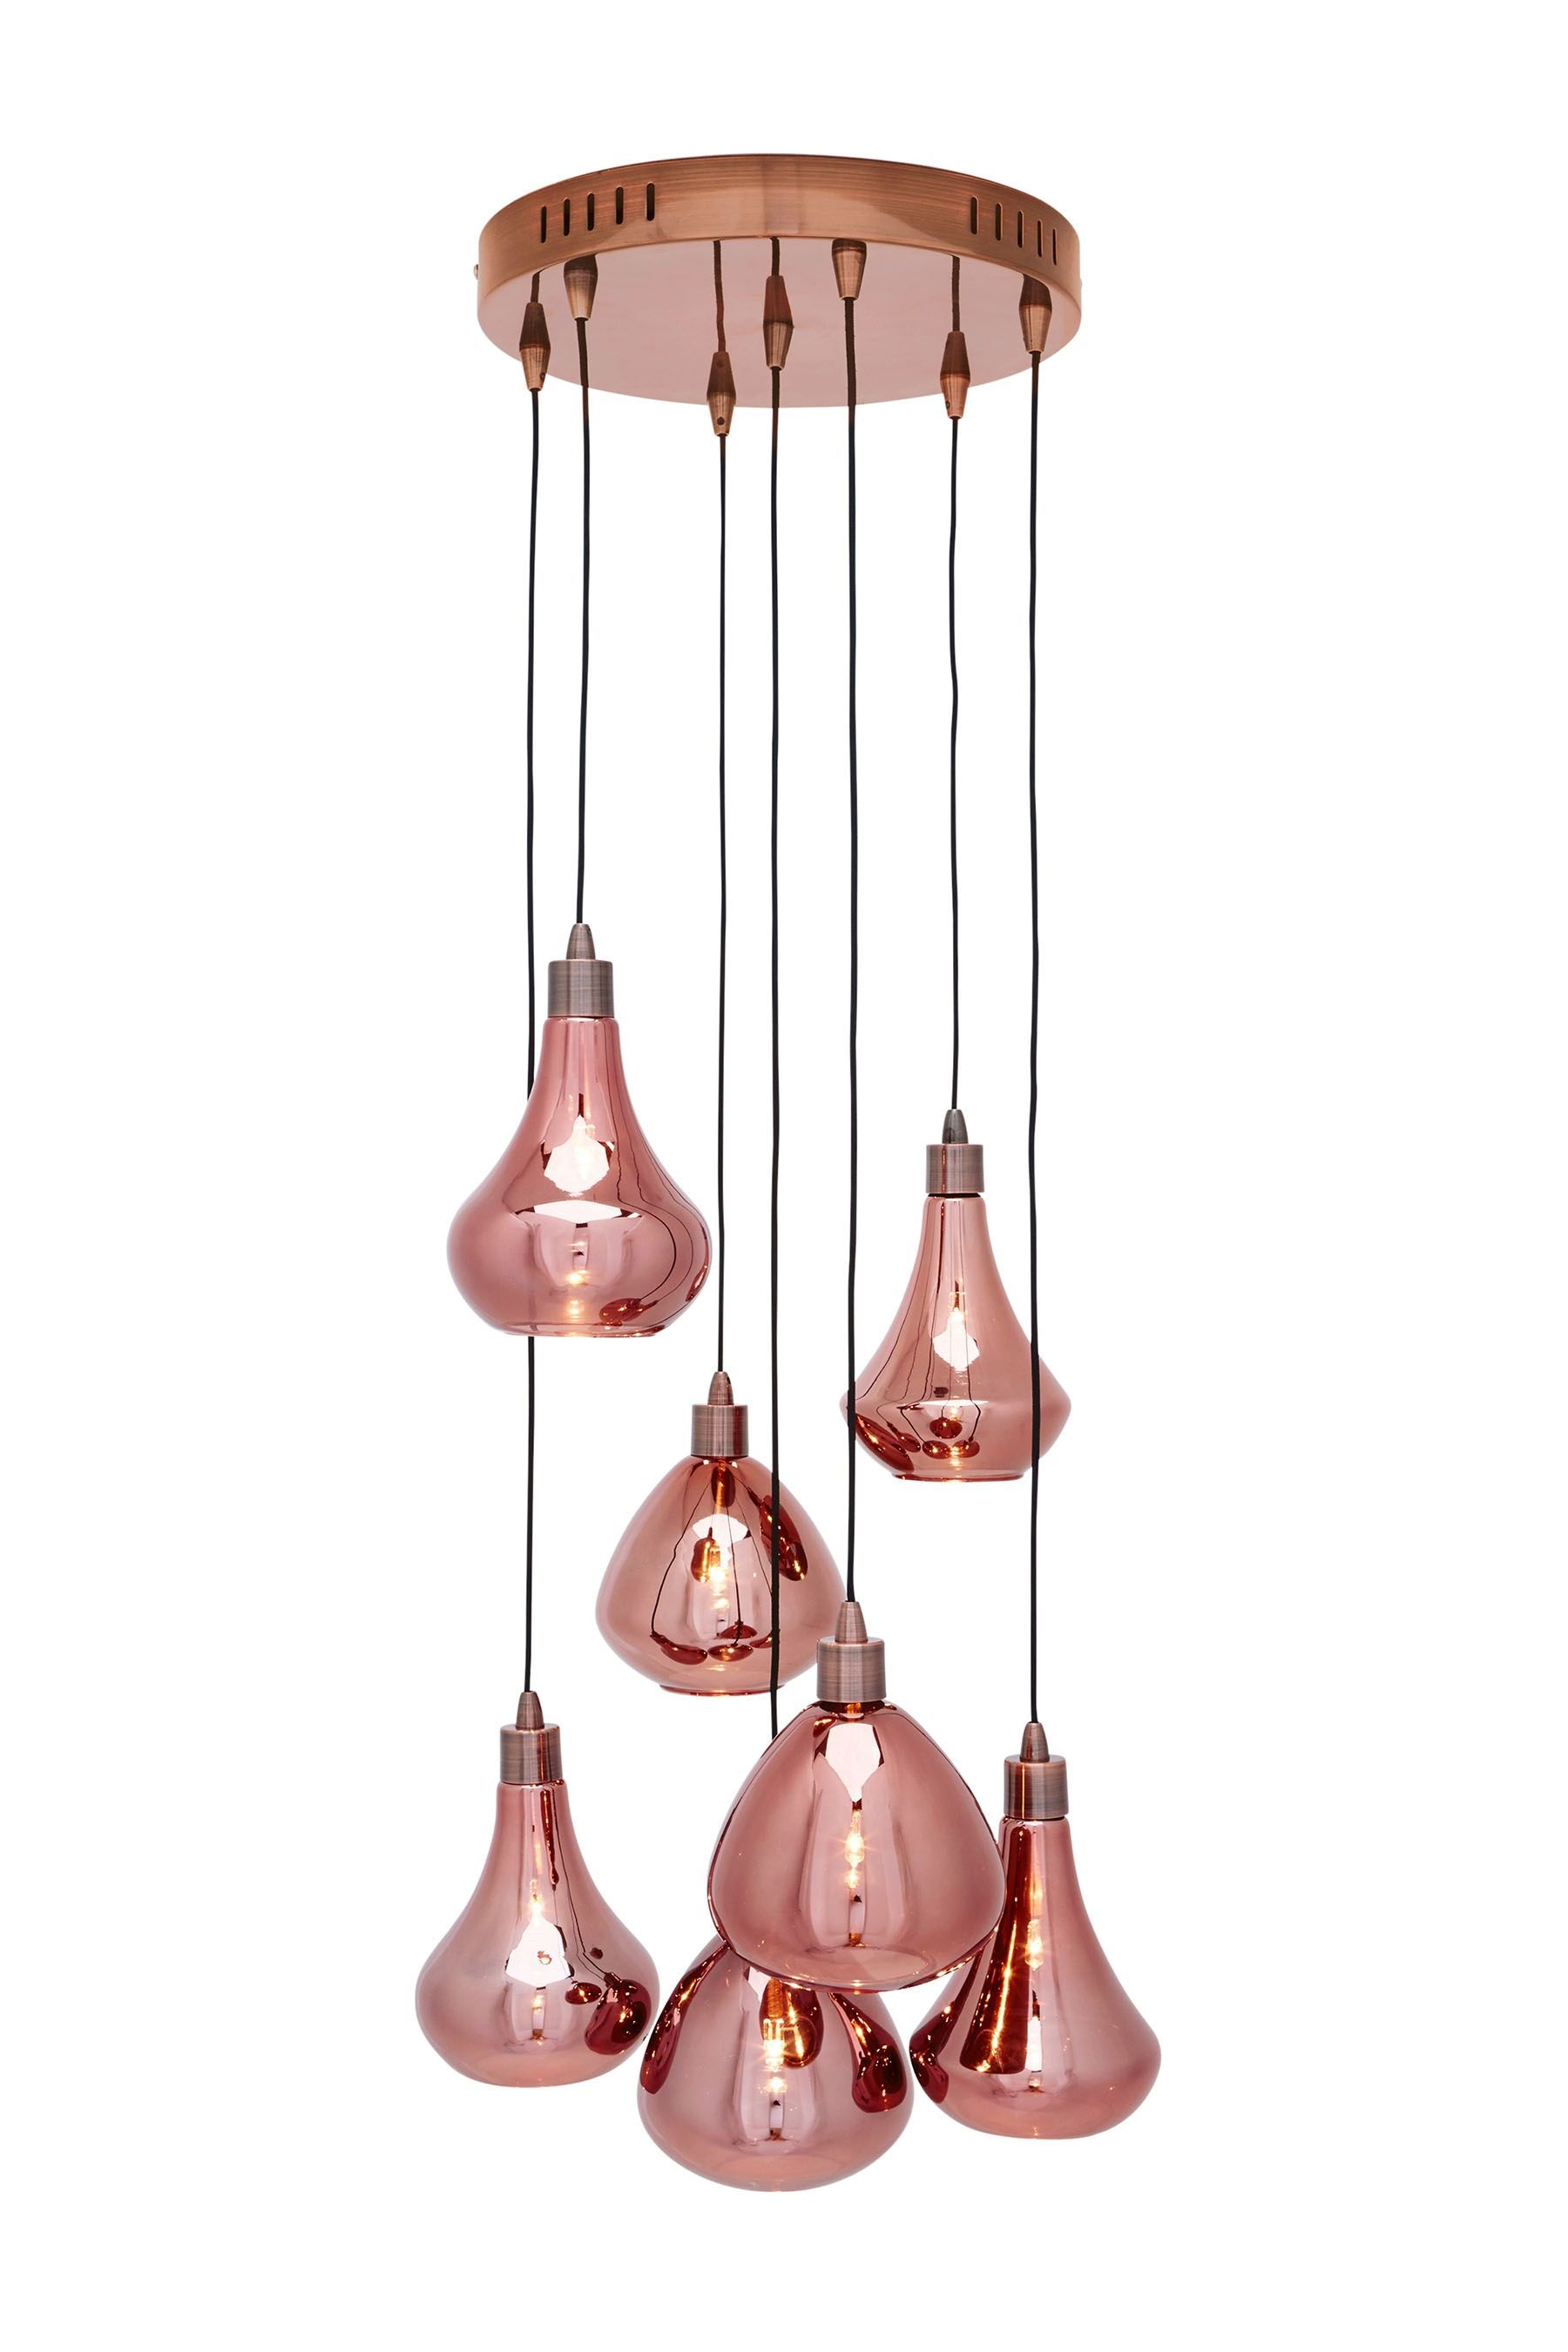 Buy malmo 7 light ceiling pendant from the next uk online shop buy malmo 7 light ceiling pendant from the next uk online shop arubaitofo Choice Image